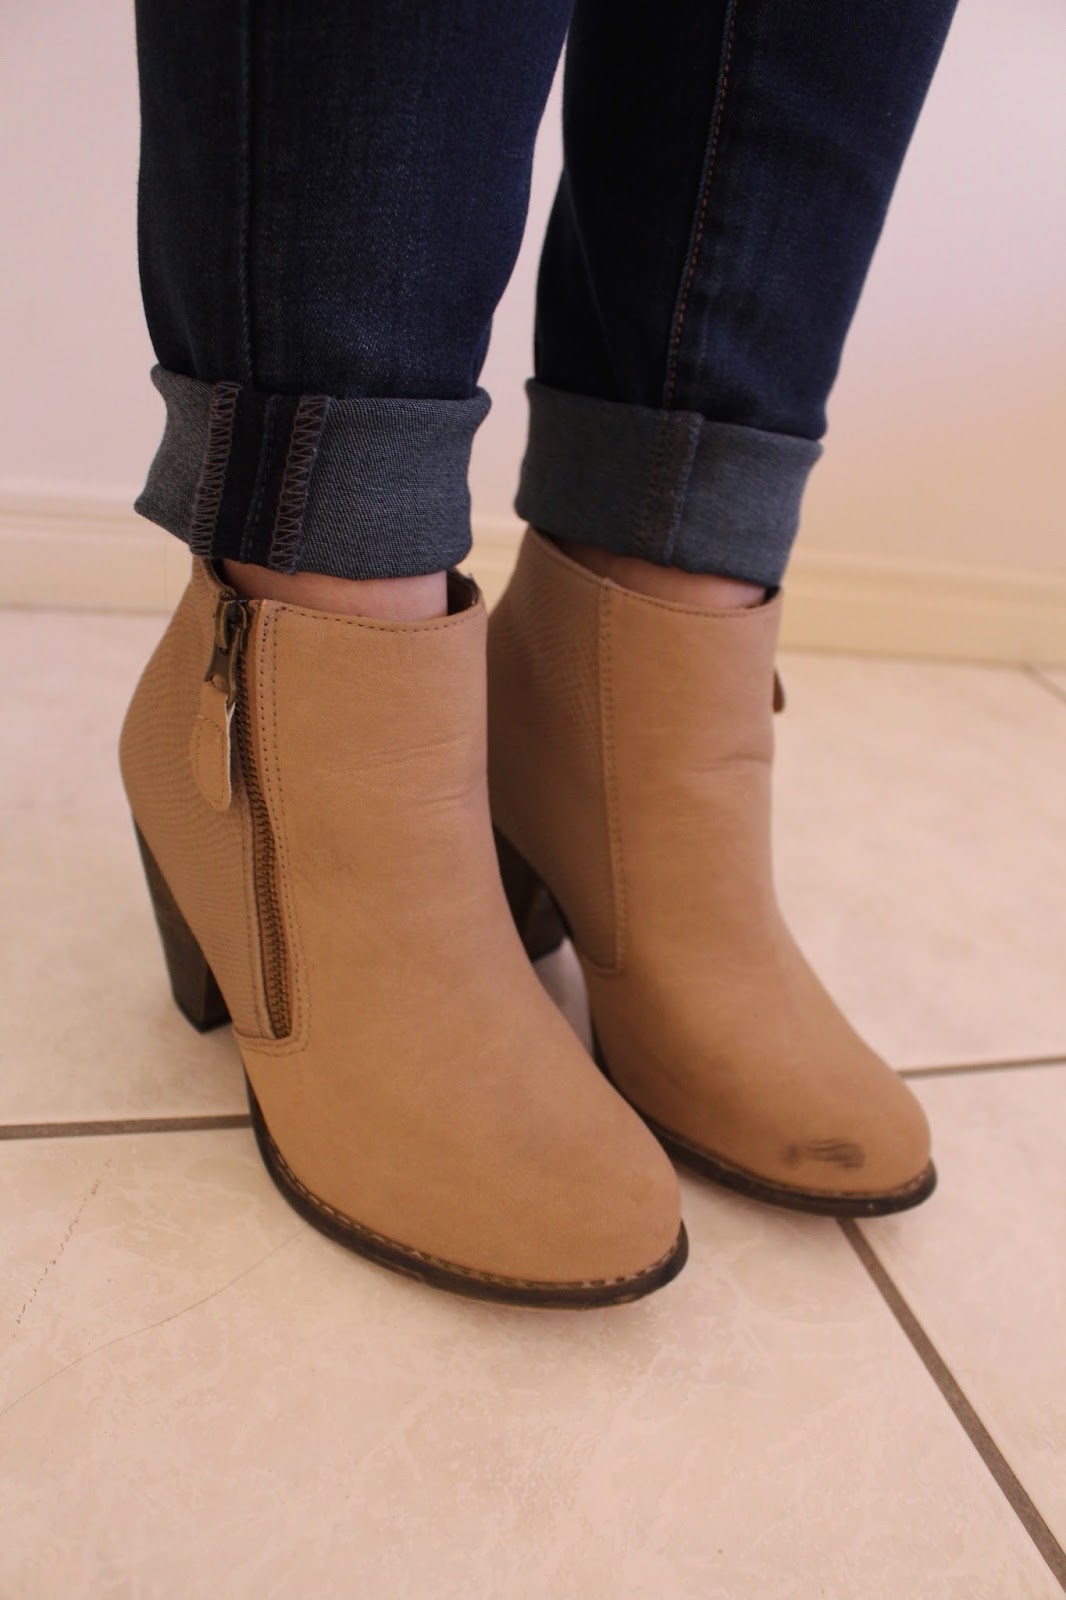 winter boot collection, steve madden boots, novo boots, combat boots, booties, biker boots, winter boots,